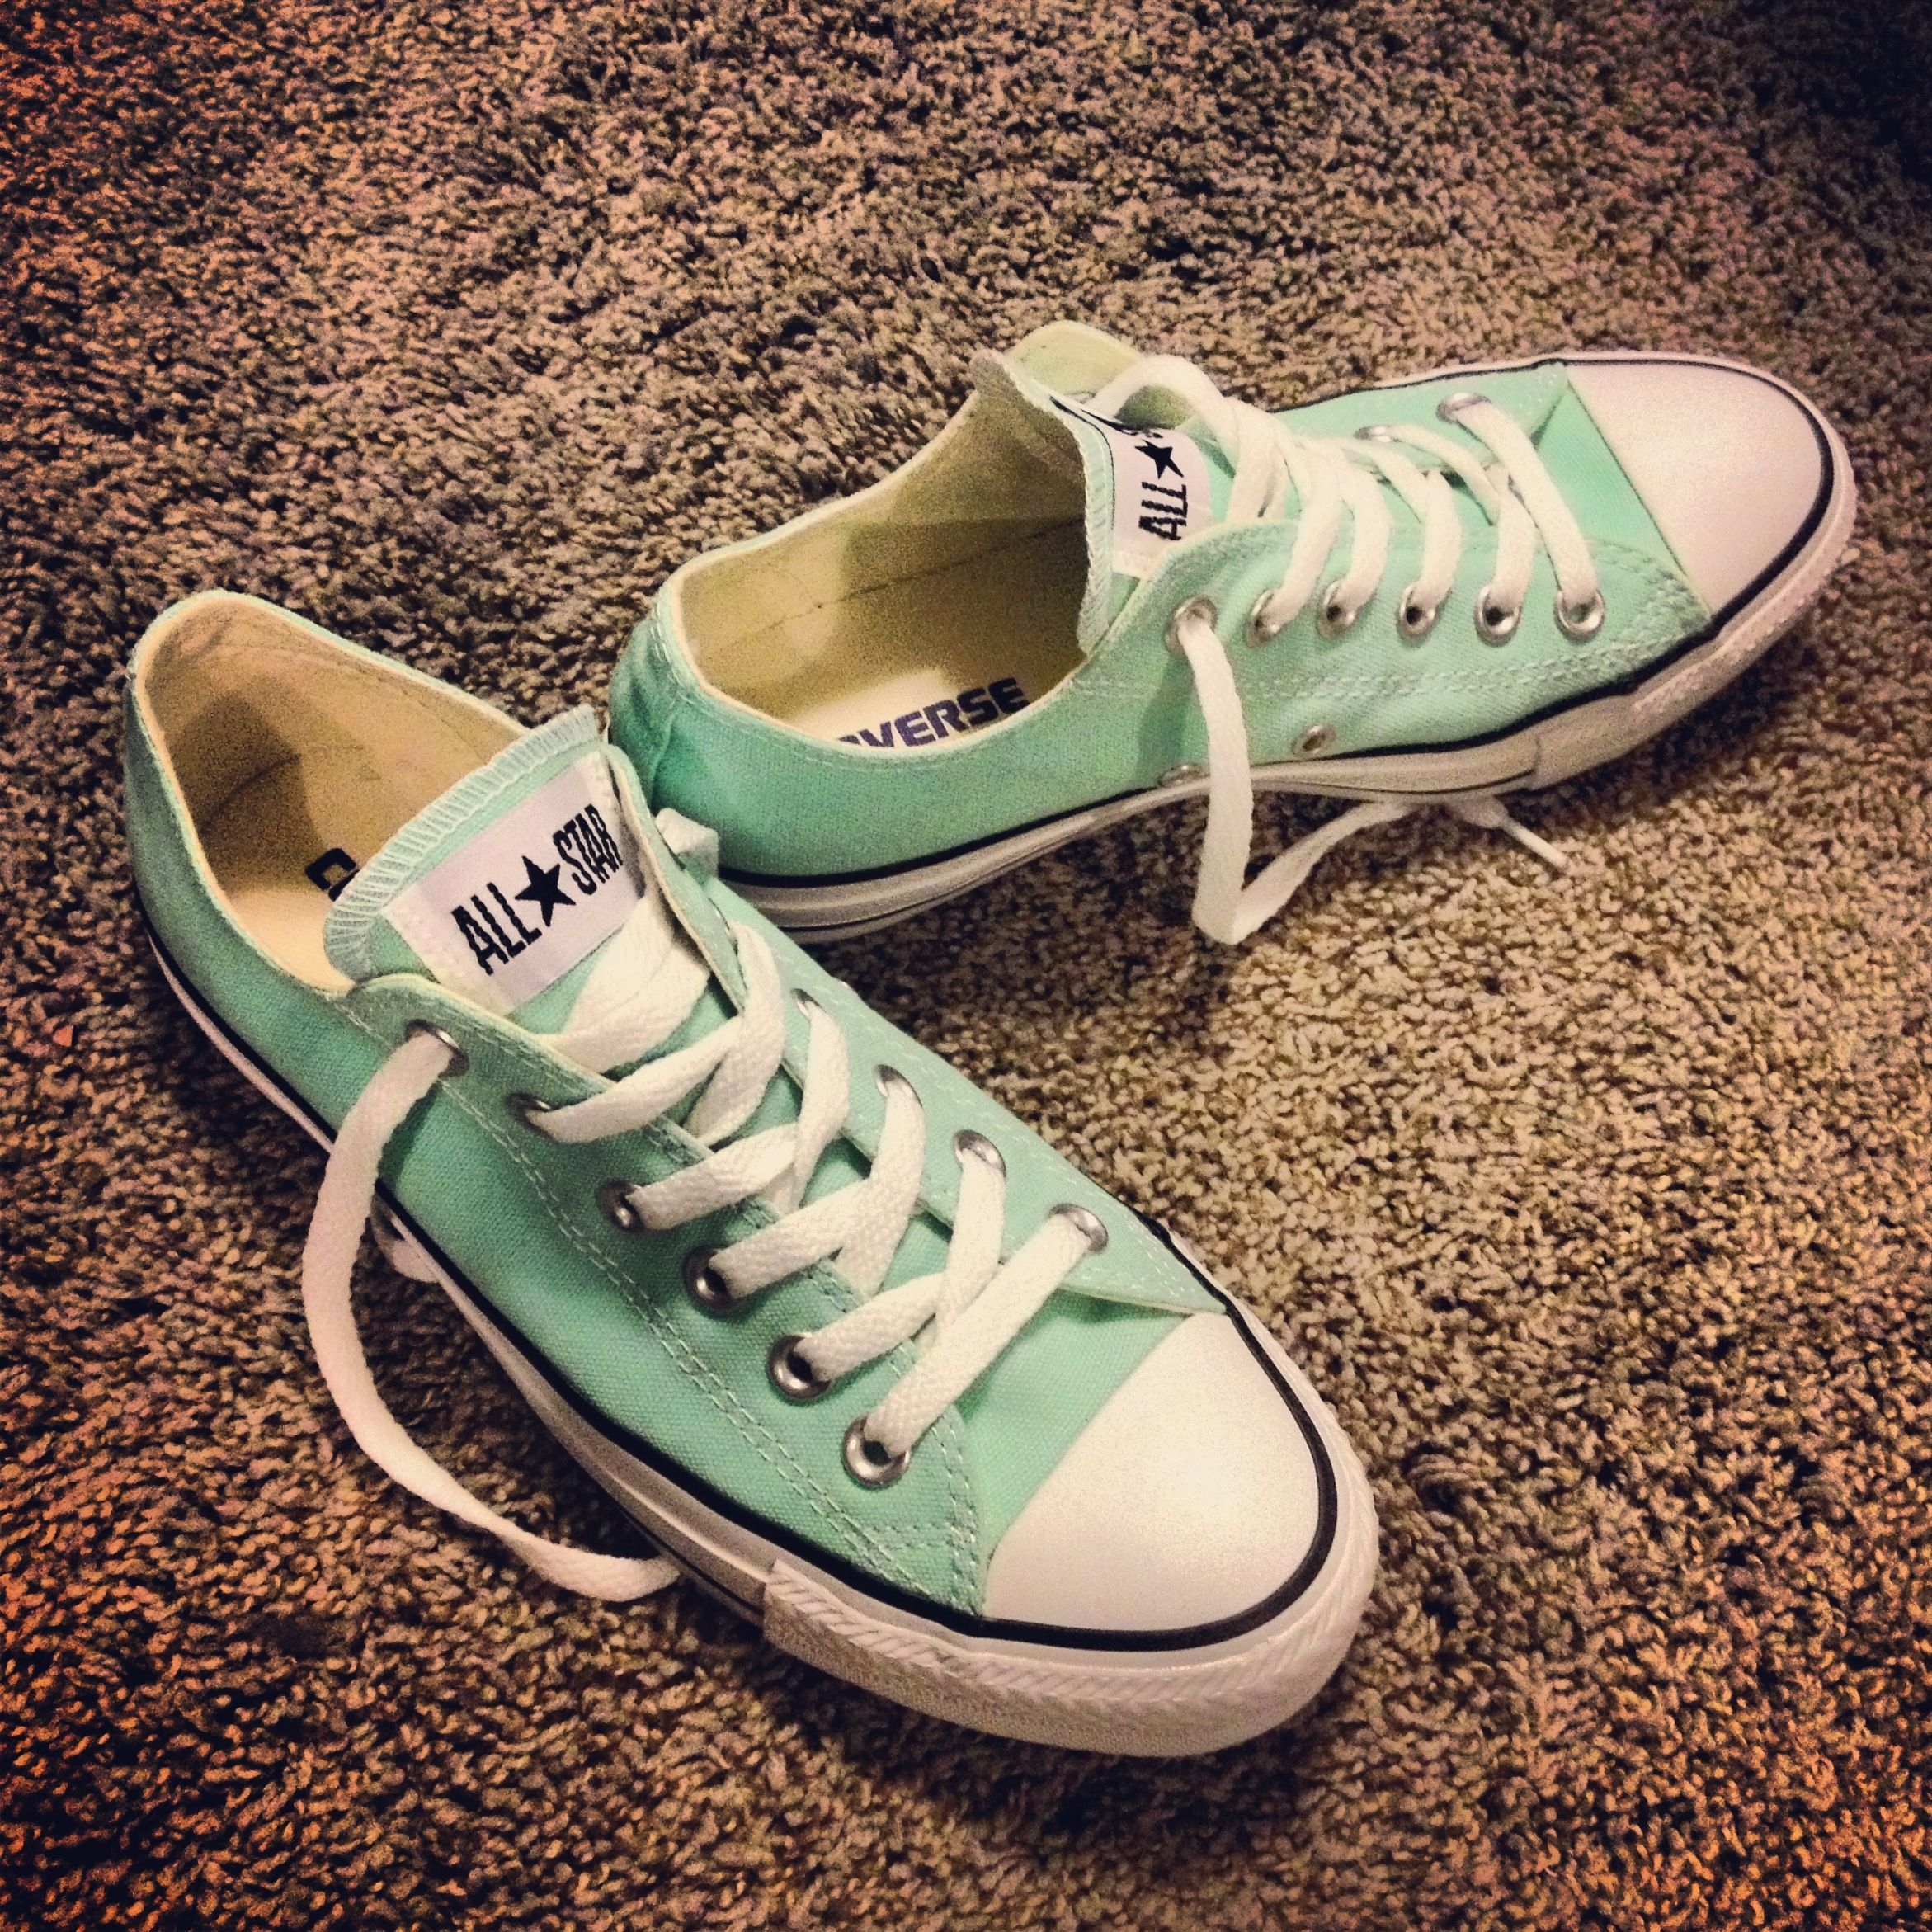 Beach Gl Converse All Star Chuck Taylor S